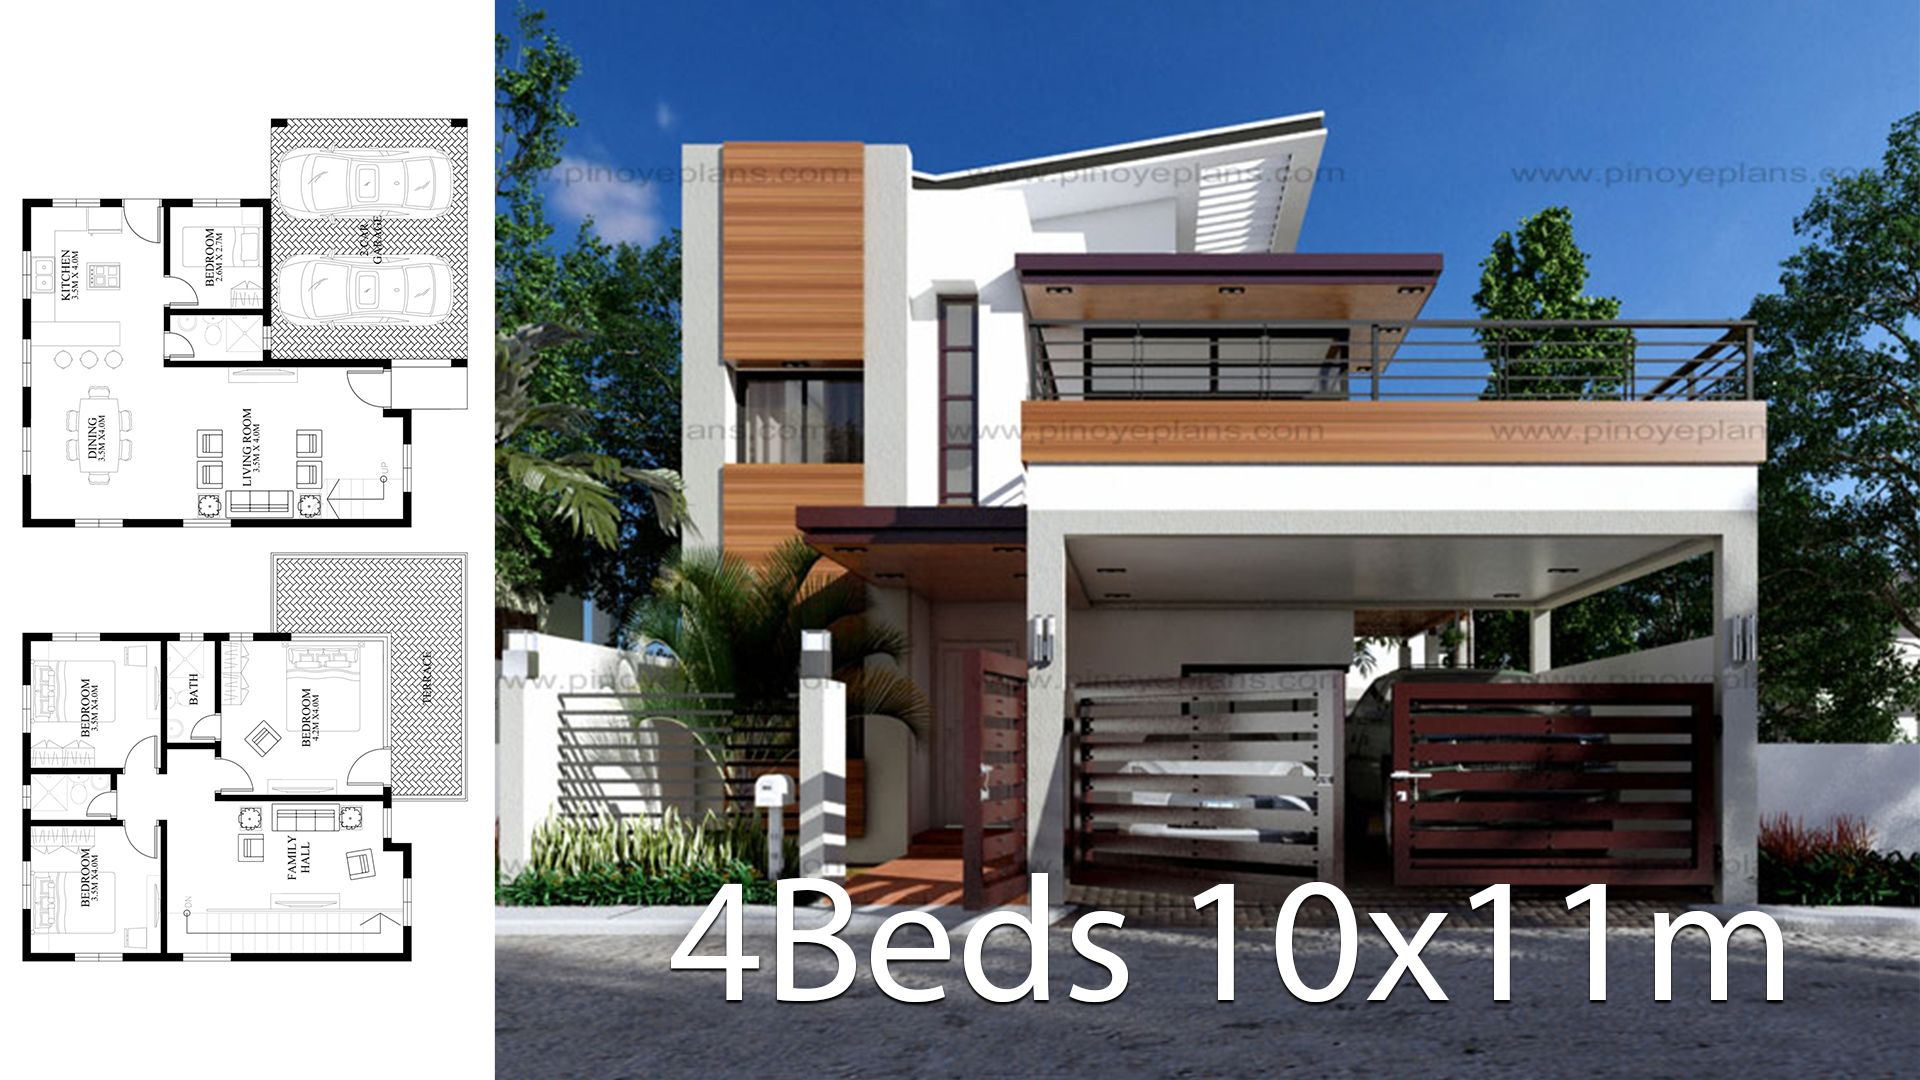 Modern Home Design 10x11m With 4 Bedrooms Style Modernhouse Description Two Car Parking And Gardenground Le Modern House Design Modern House One Bedroom House